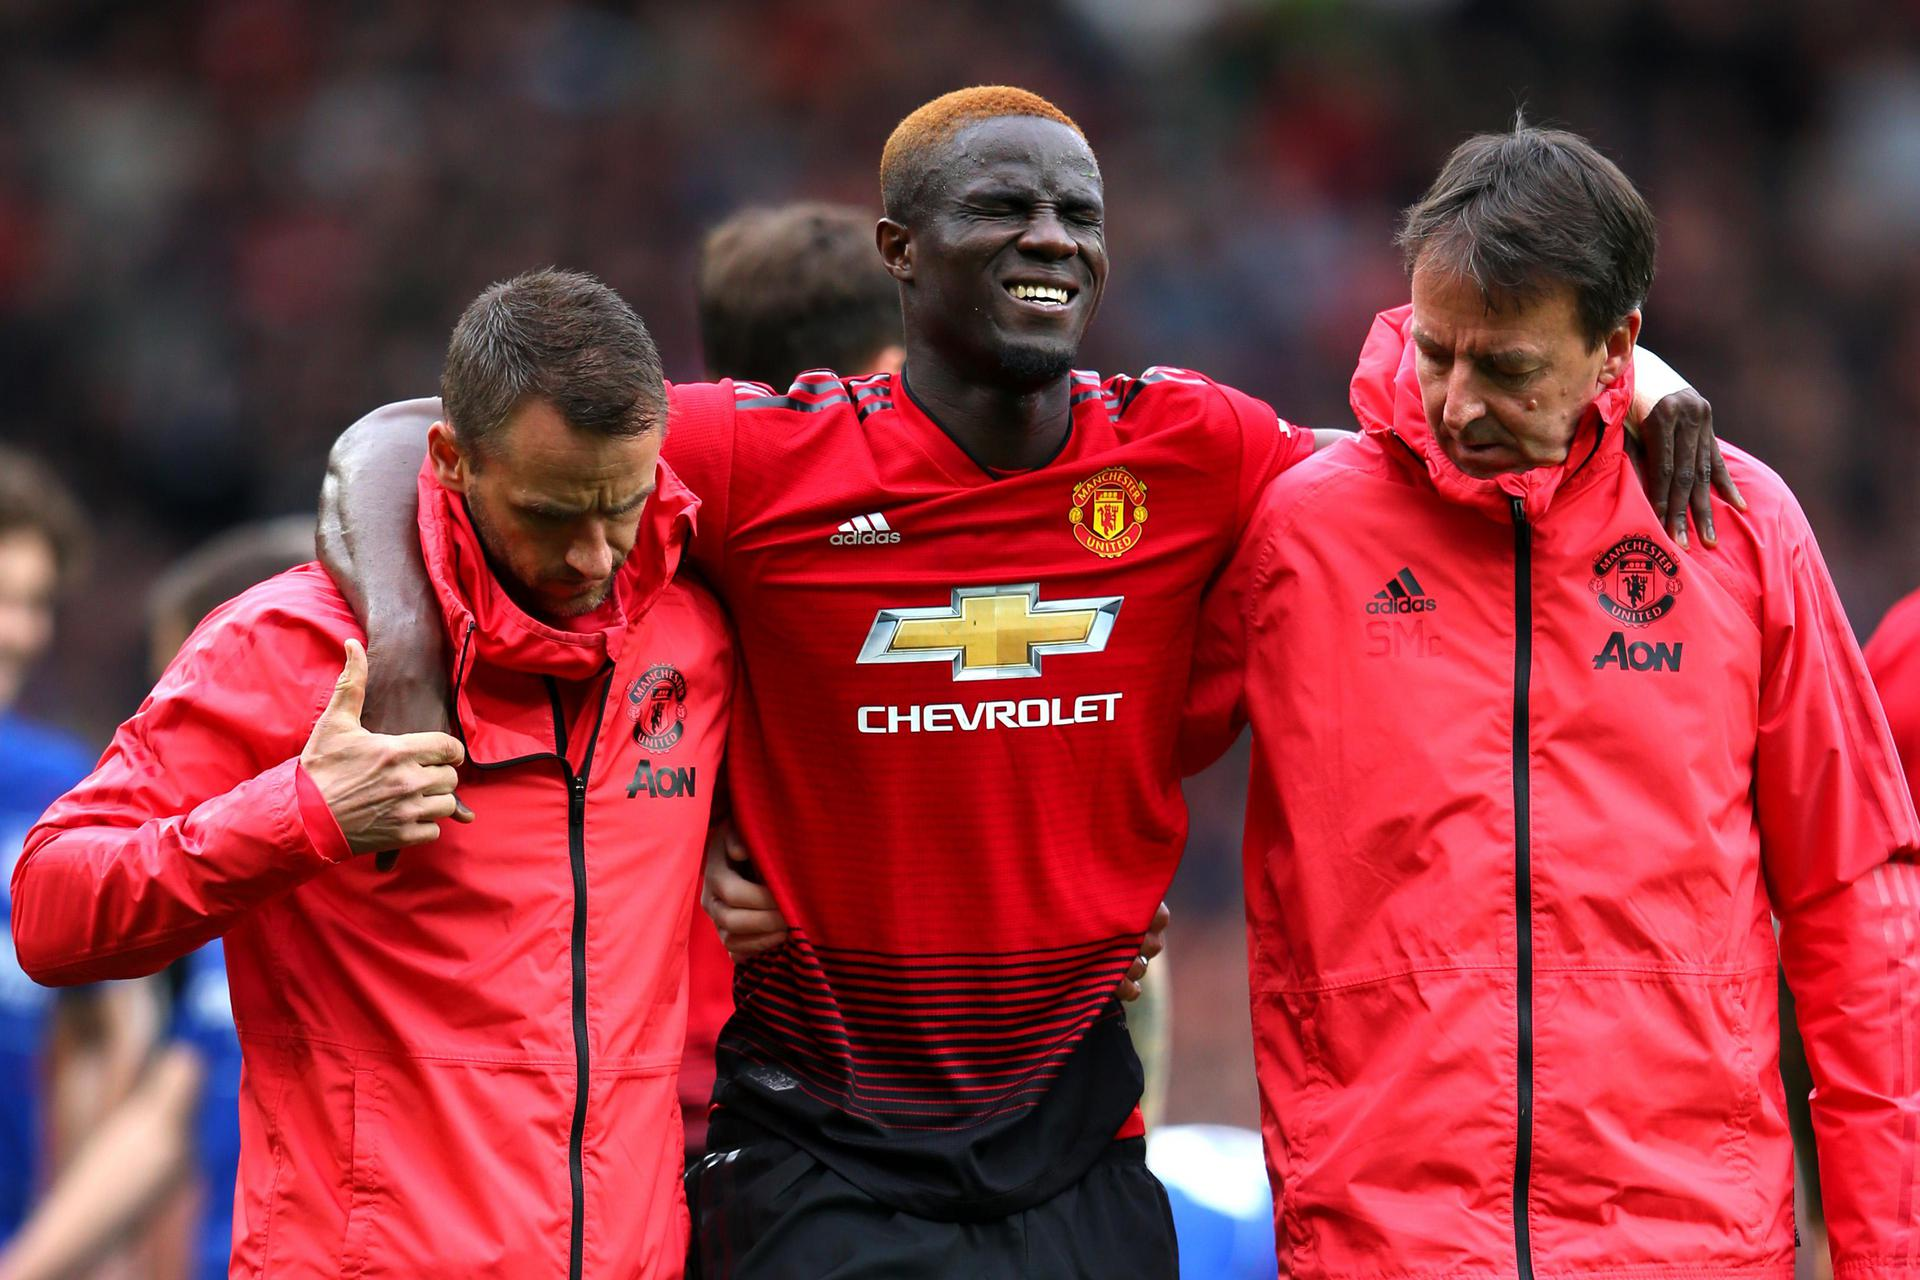 Eric Bailly with his arm around two coaches.